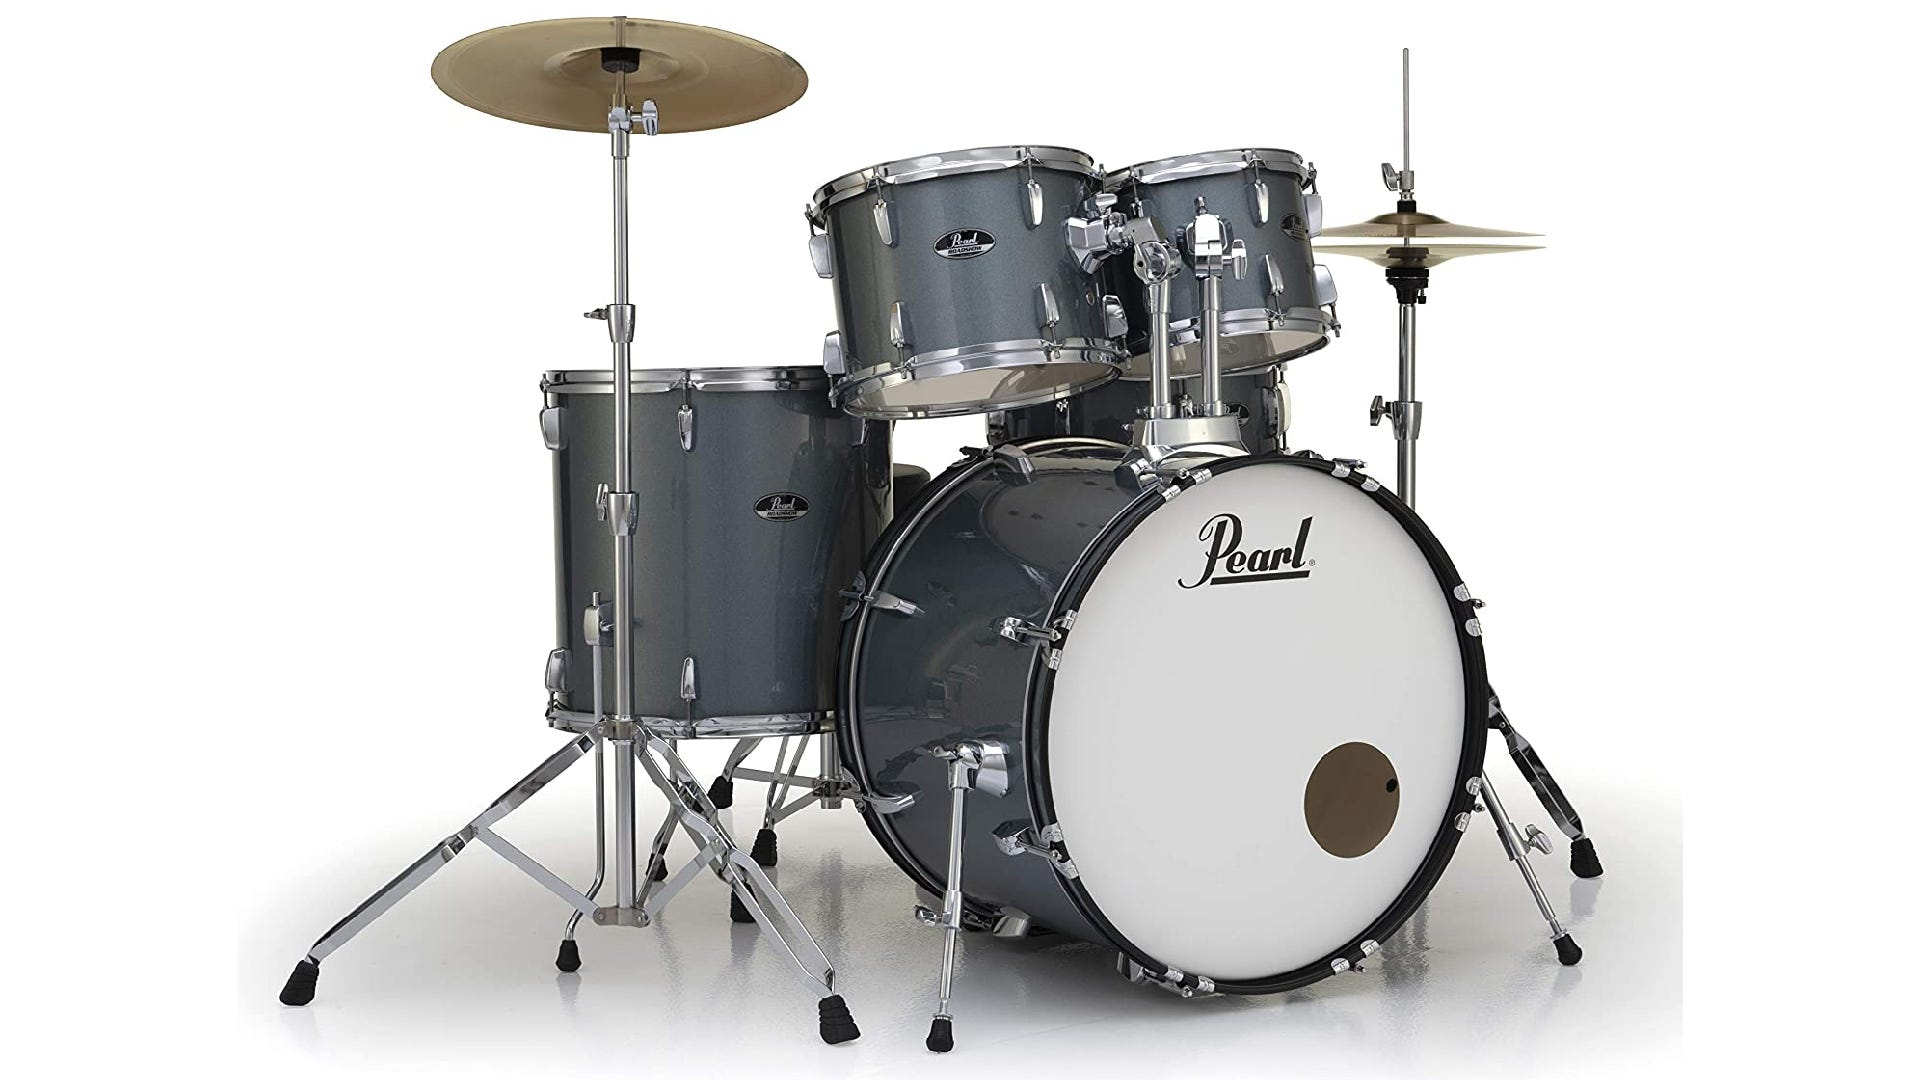 gray-colored drum set with bass drum, snare, two mounted toms, floor tom, hi-hat, and crash cymbal.